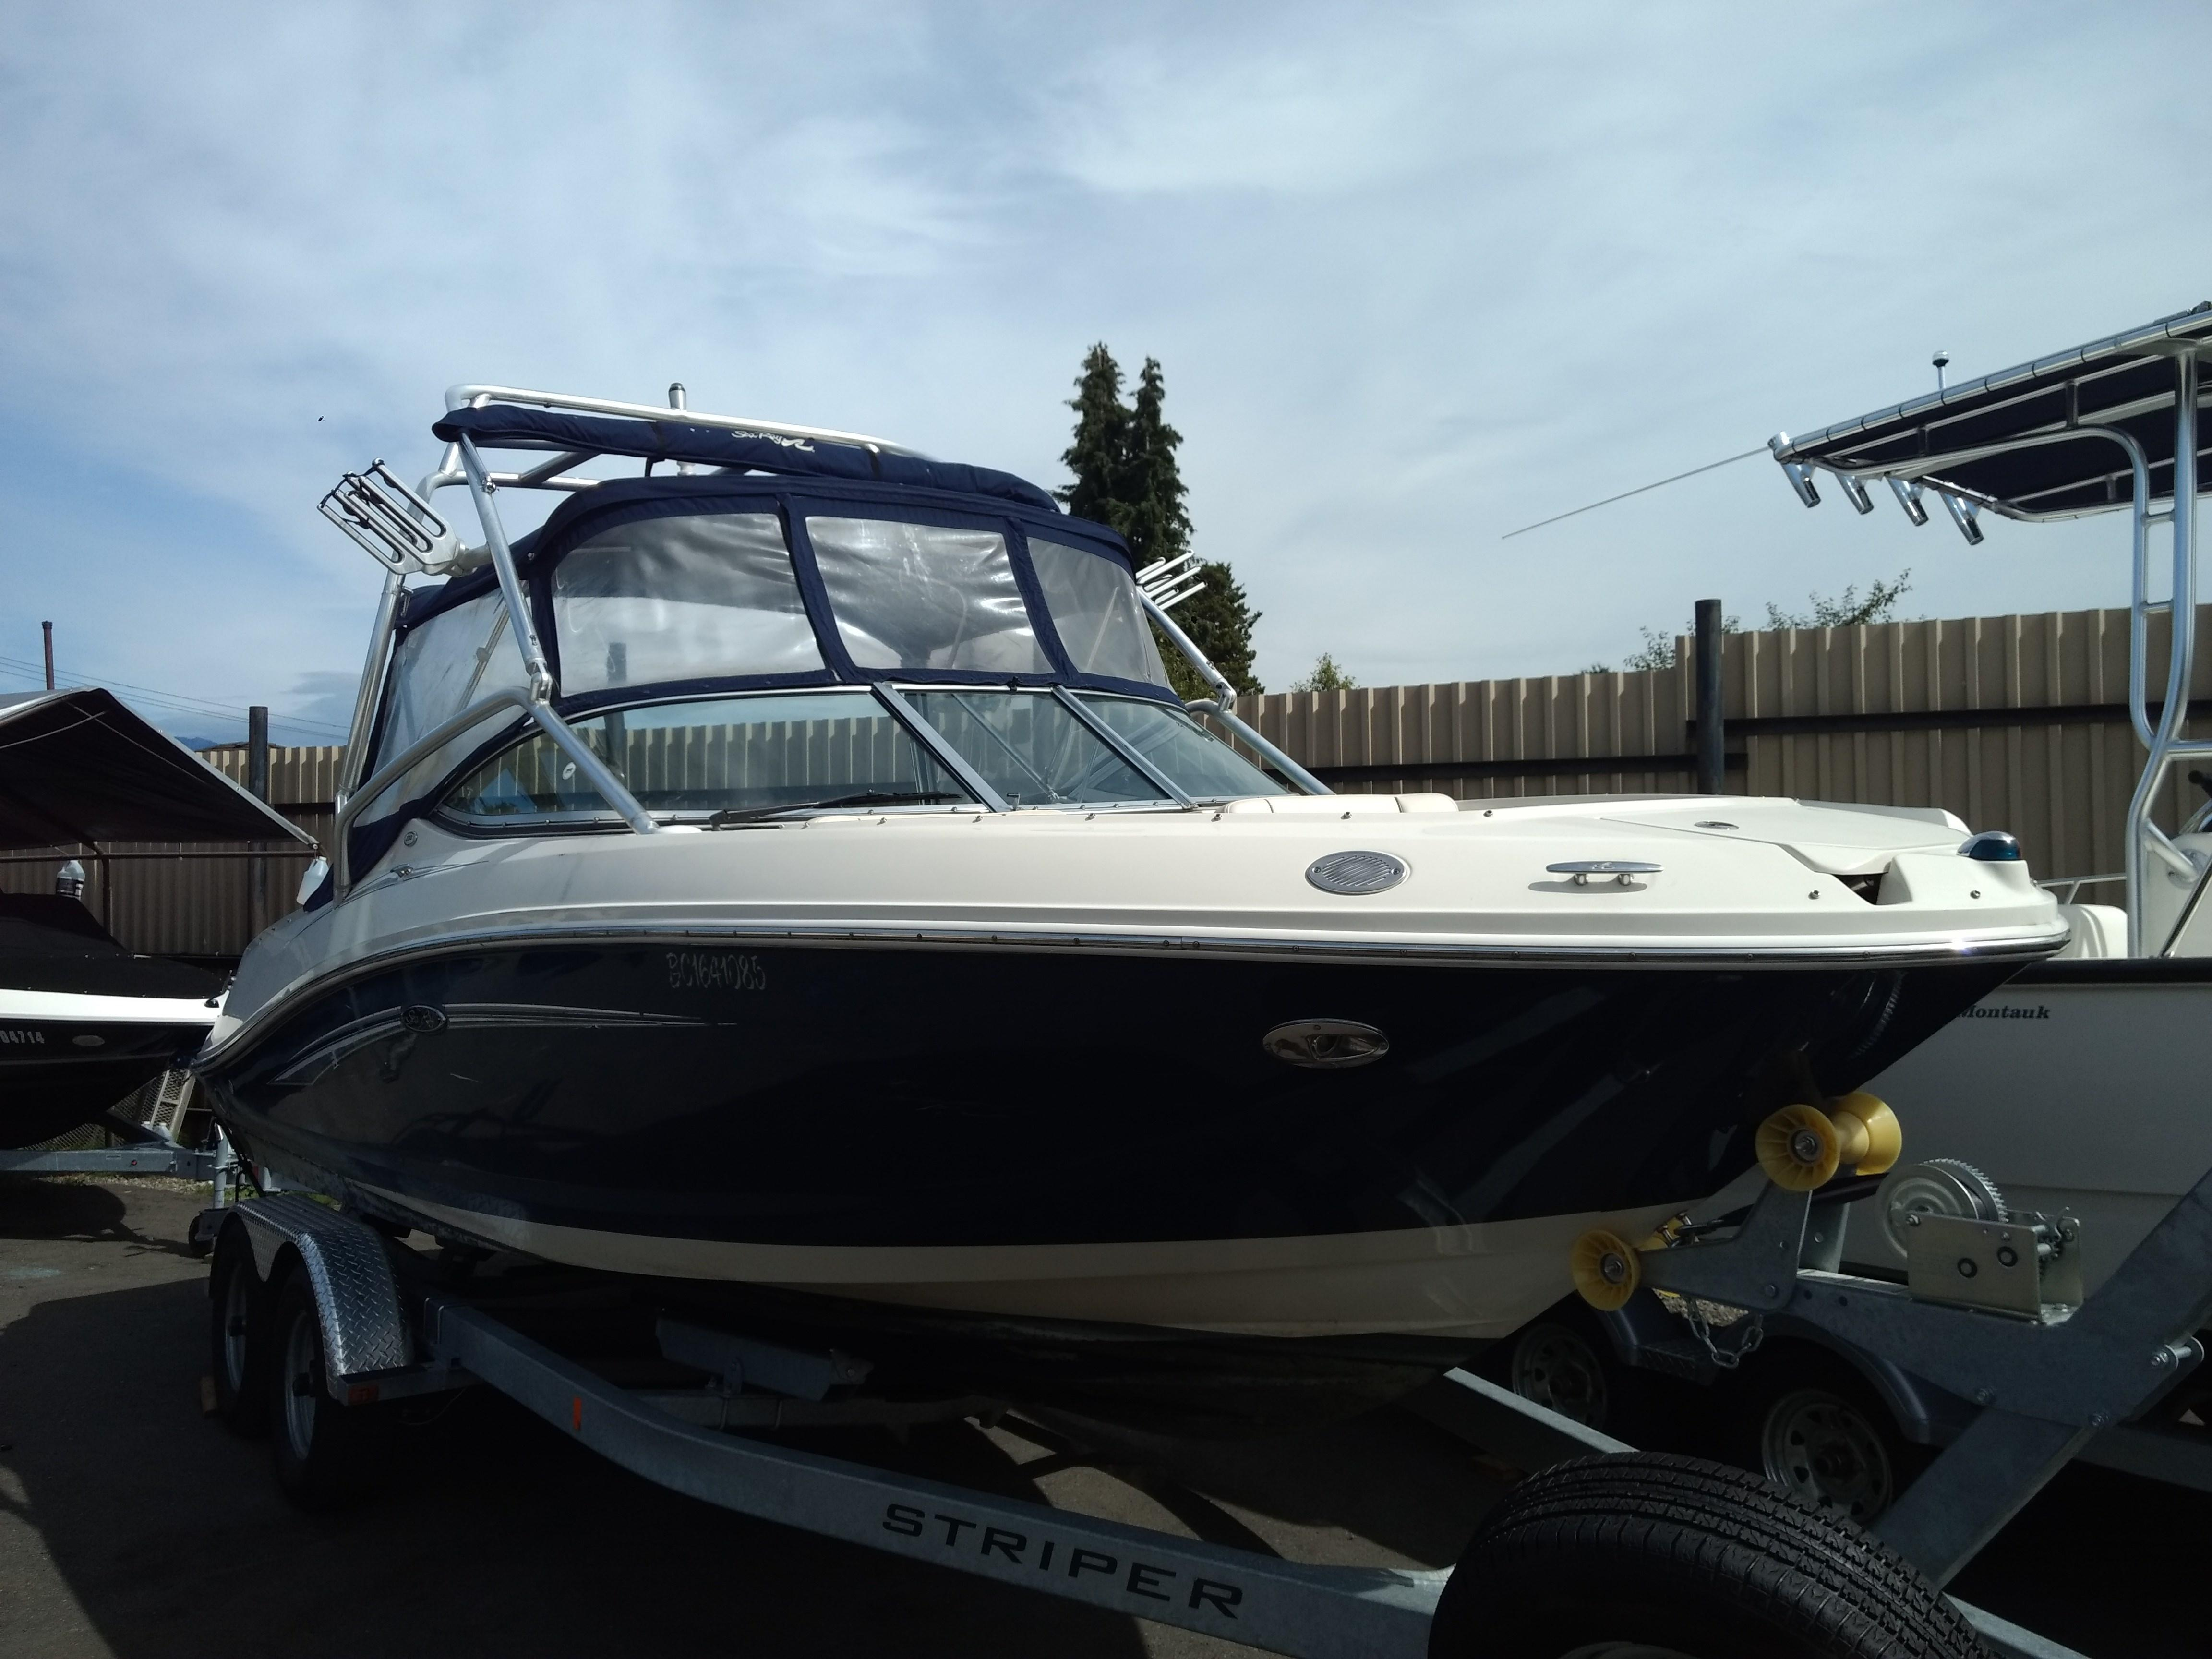 6351553_20170829150630352_1_XLARGE&w=246&h=164&t=1504048055000 2003 sea ray 270 sundeck power boat for sale www yachtworld com 1992 Sea Ray 210 Bowrider at love-stories.co